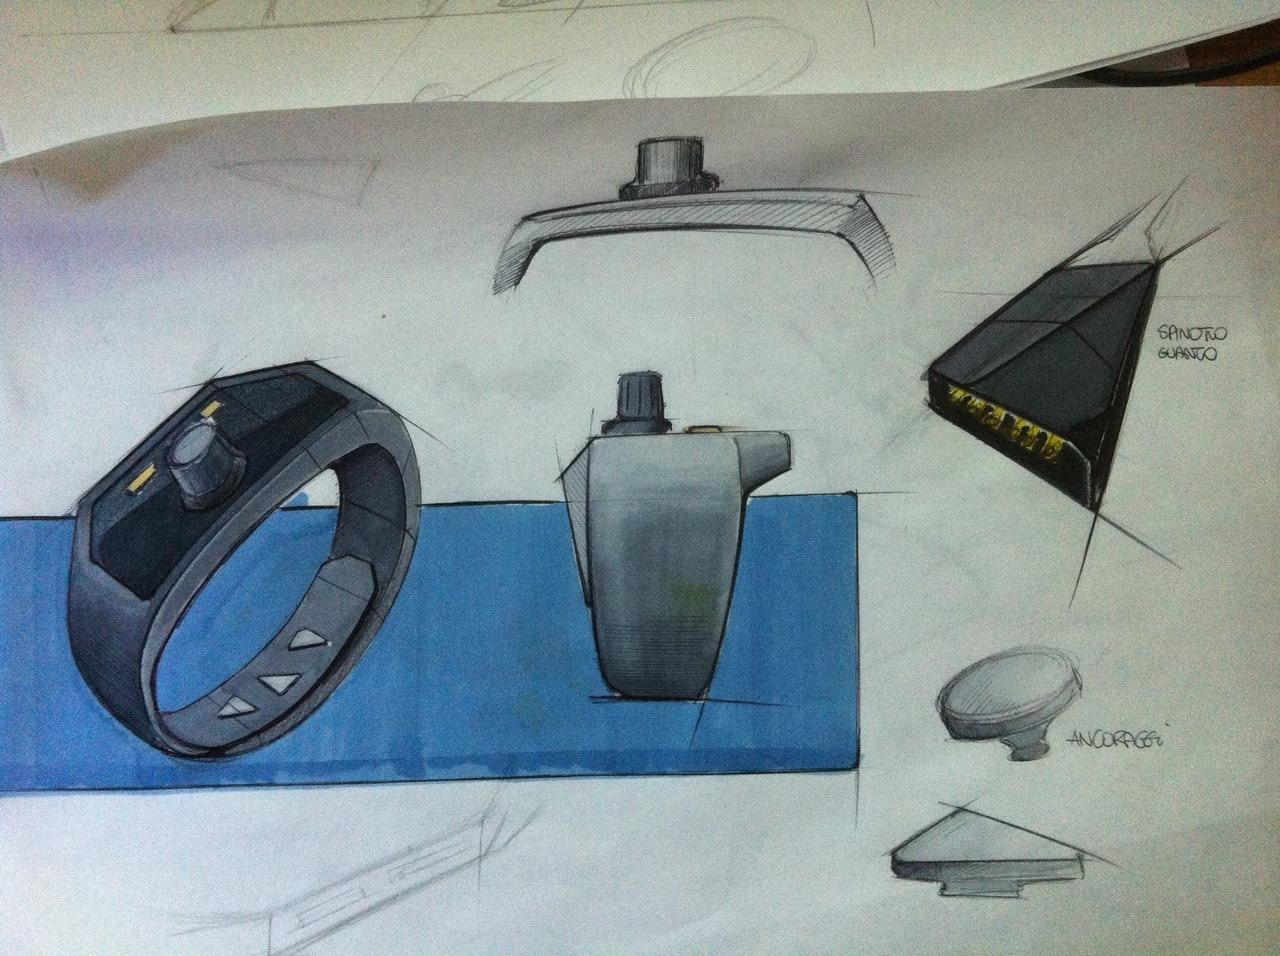 Design sketch during the development of the T8 MIDI controller